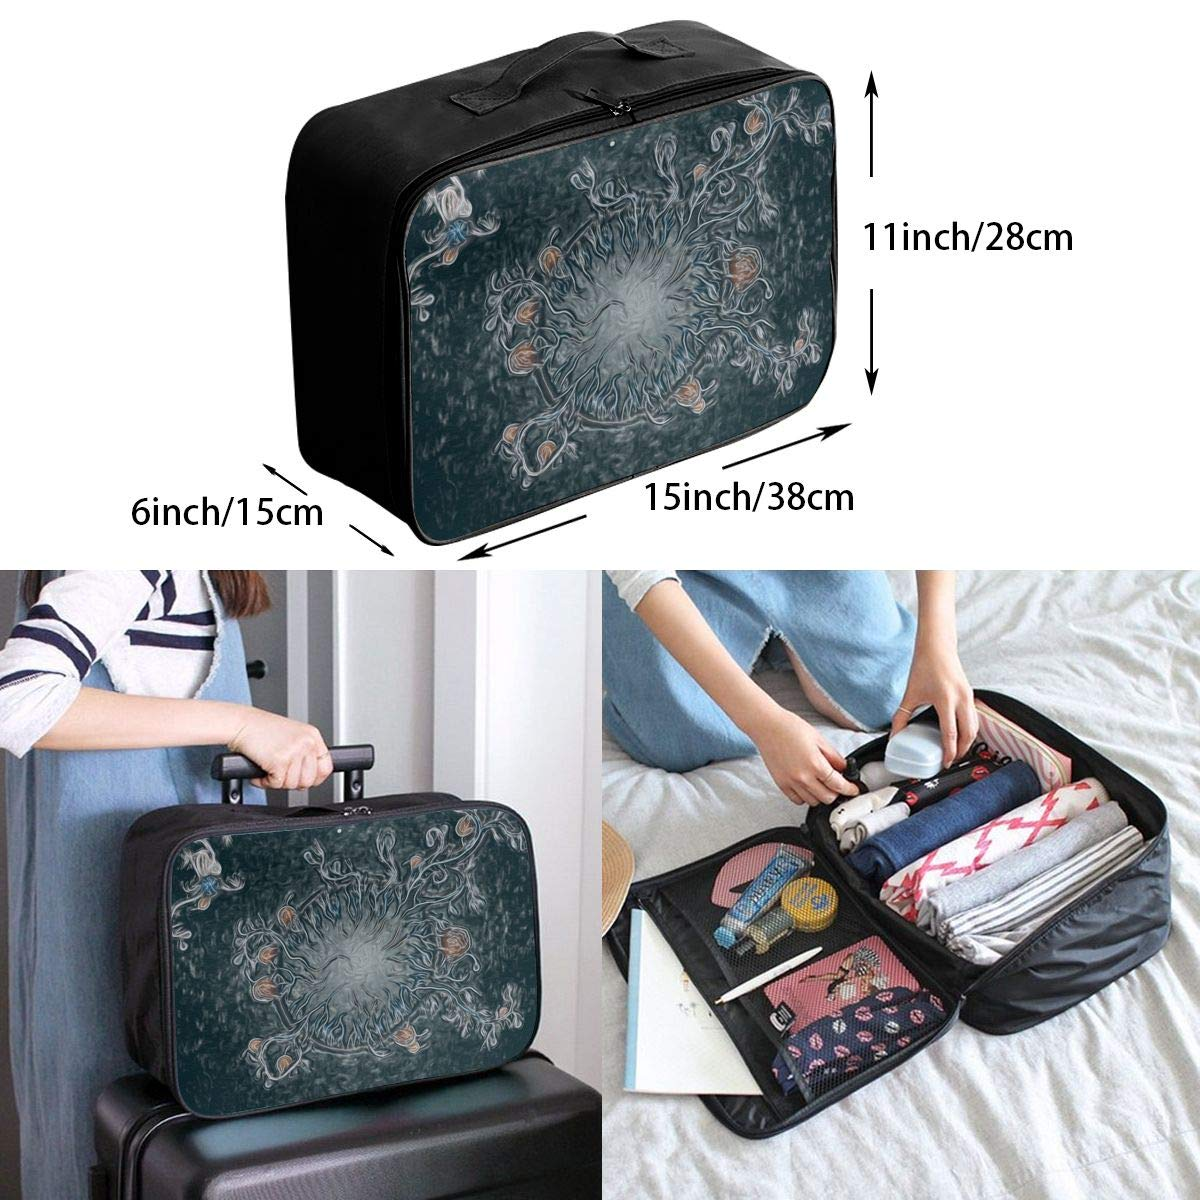 Travel Luggage Duffle Bag Lightweight Portable Handbag Abstract Psychedelic Pattern Large Capacity Waterproof Foldable Storage Tote